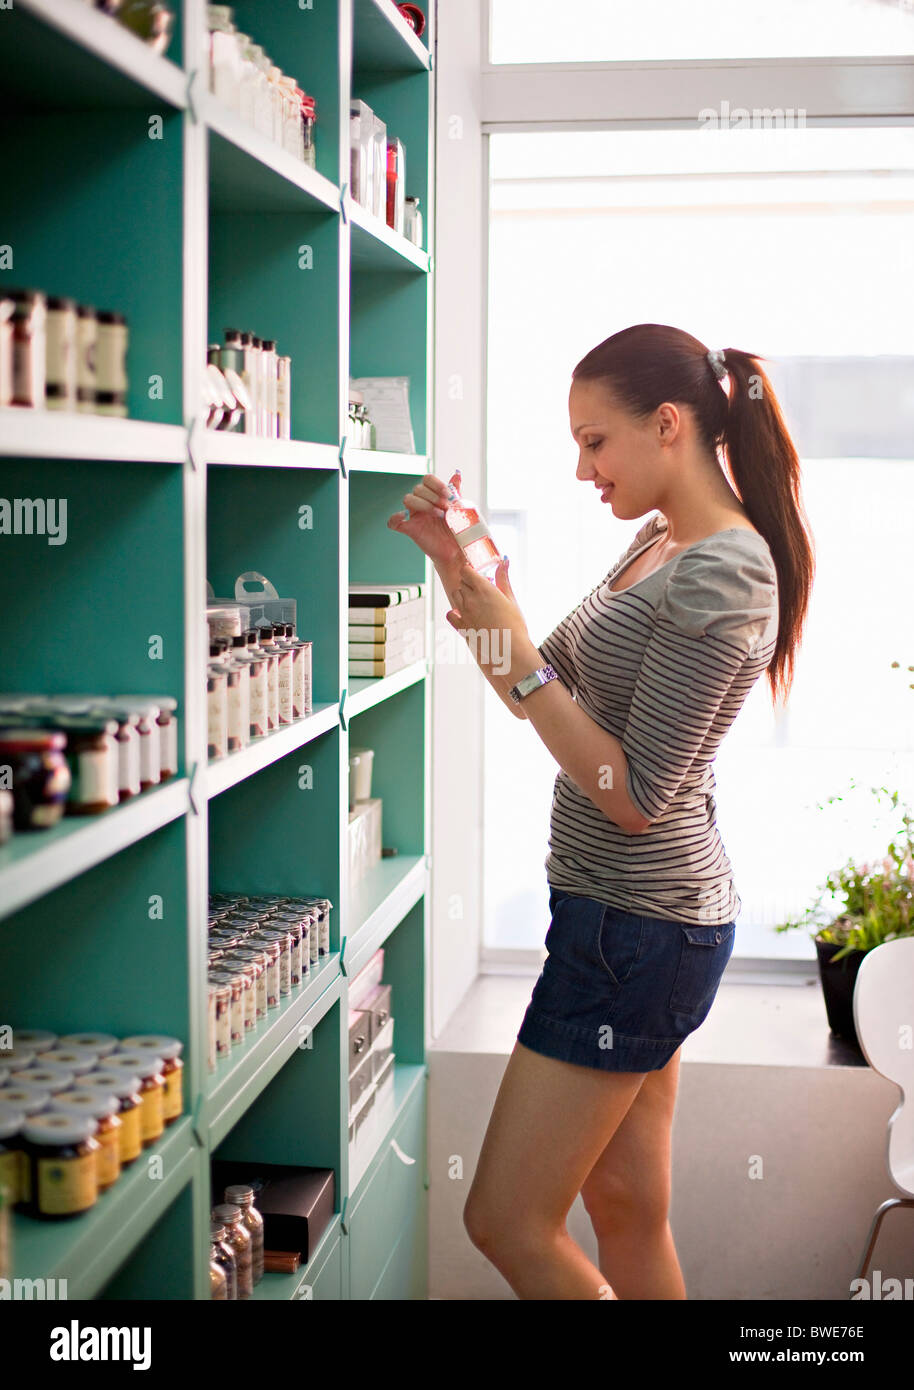 Young woman selecting product - Stock Image